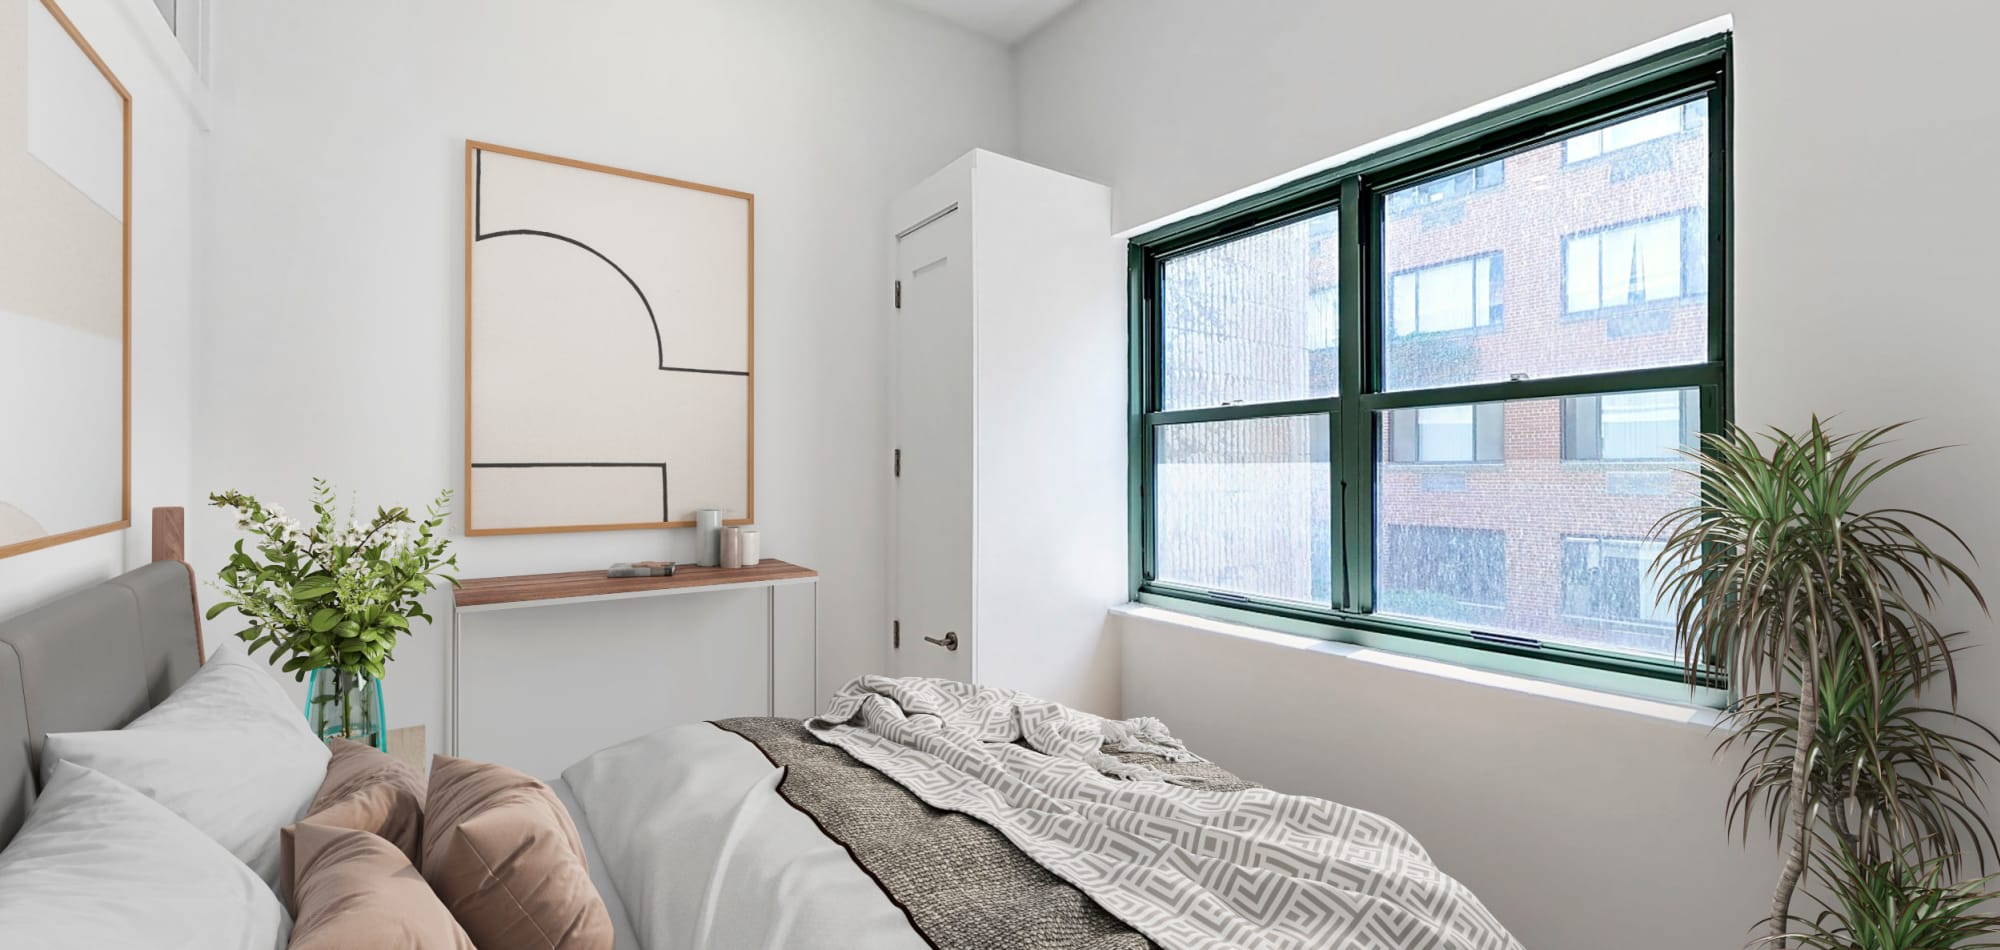 Bedroom view at 210-220 E. 22nd Street in New York, New York